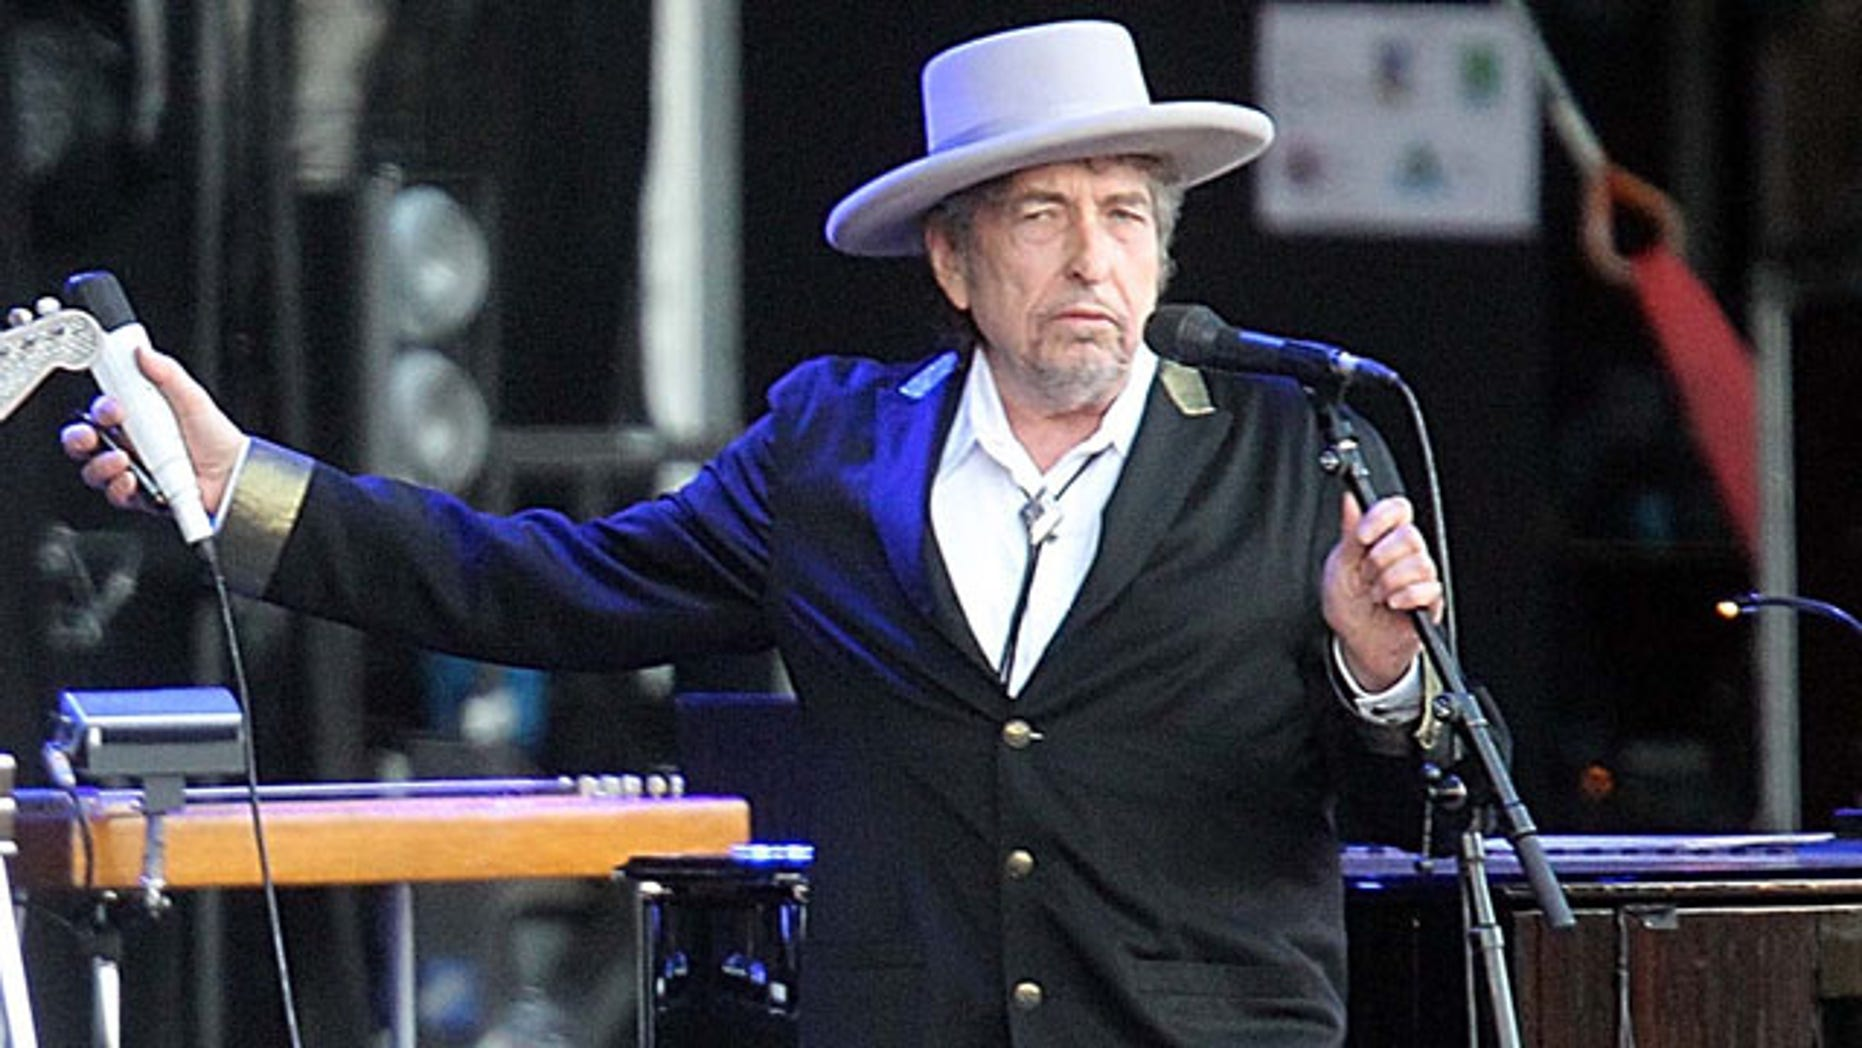 """FILE - This July 22, 2012 file photo shows U.S. singer-songwriter Bob Dylan performing on at """"Les Vieilles Charrues"""" Festival in Carhaix, western France. (AP Photo)"""